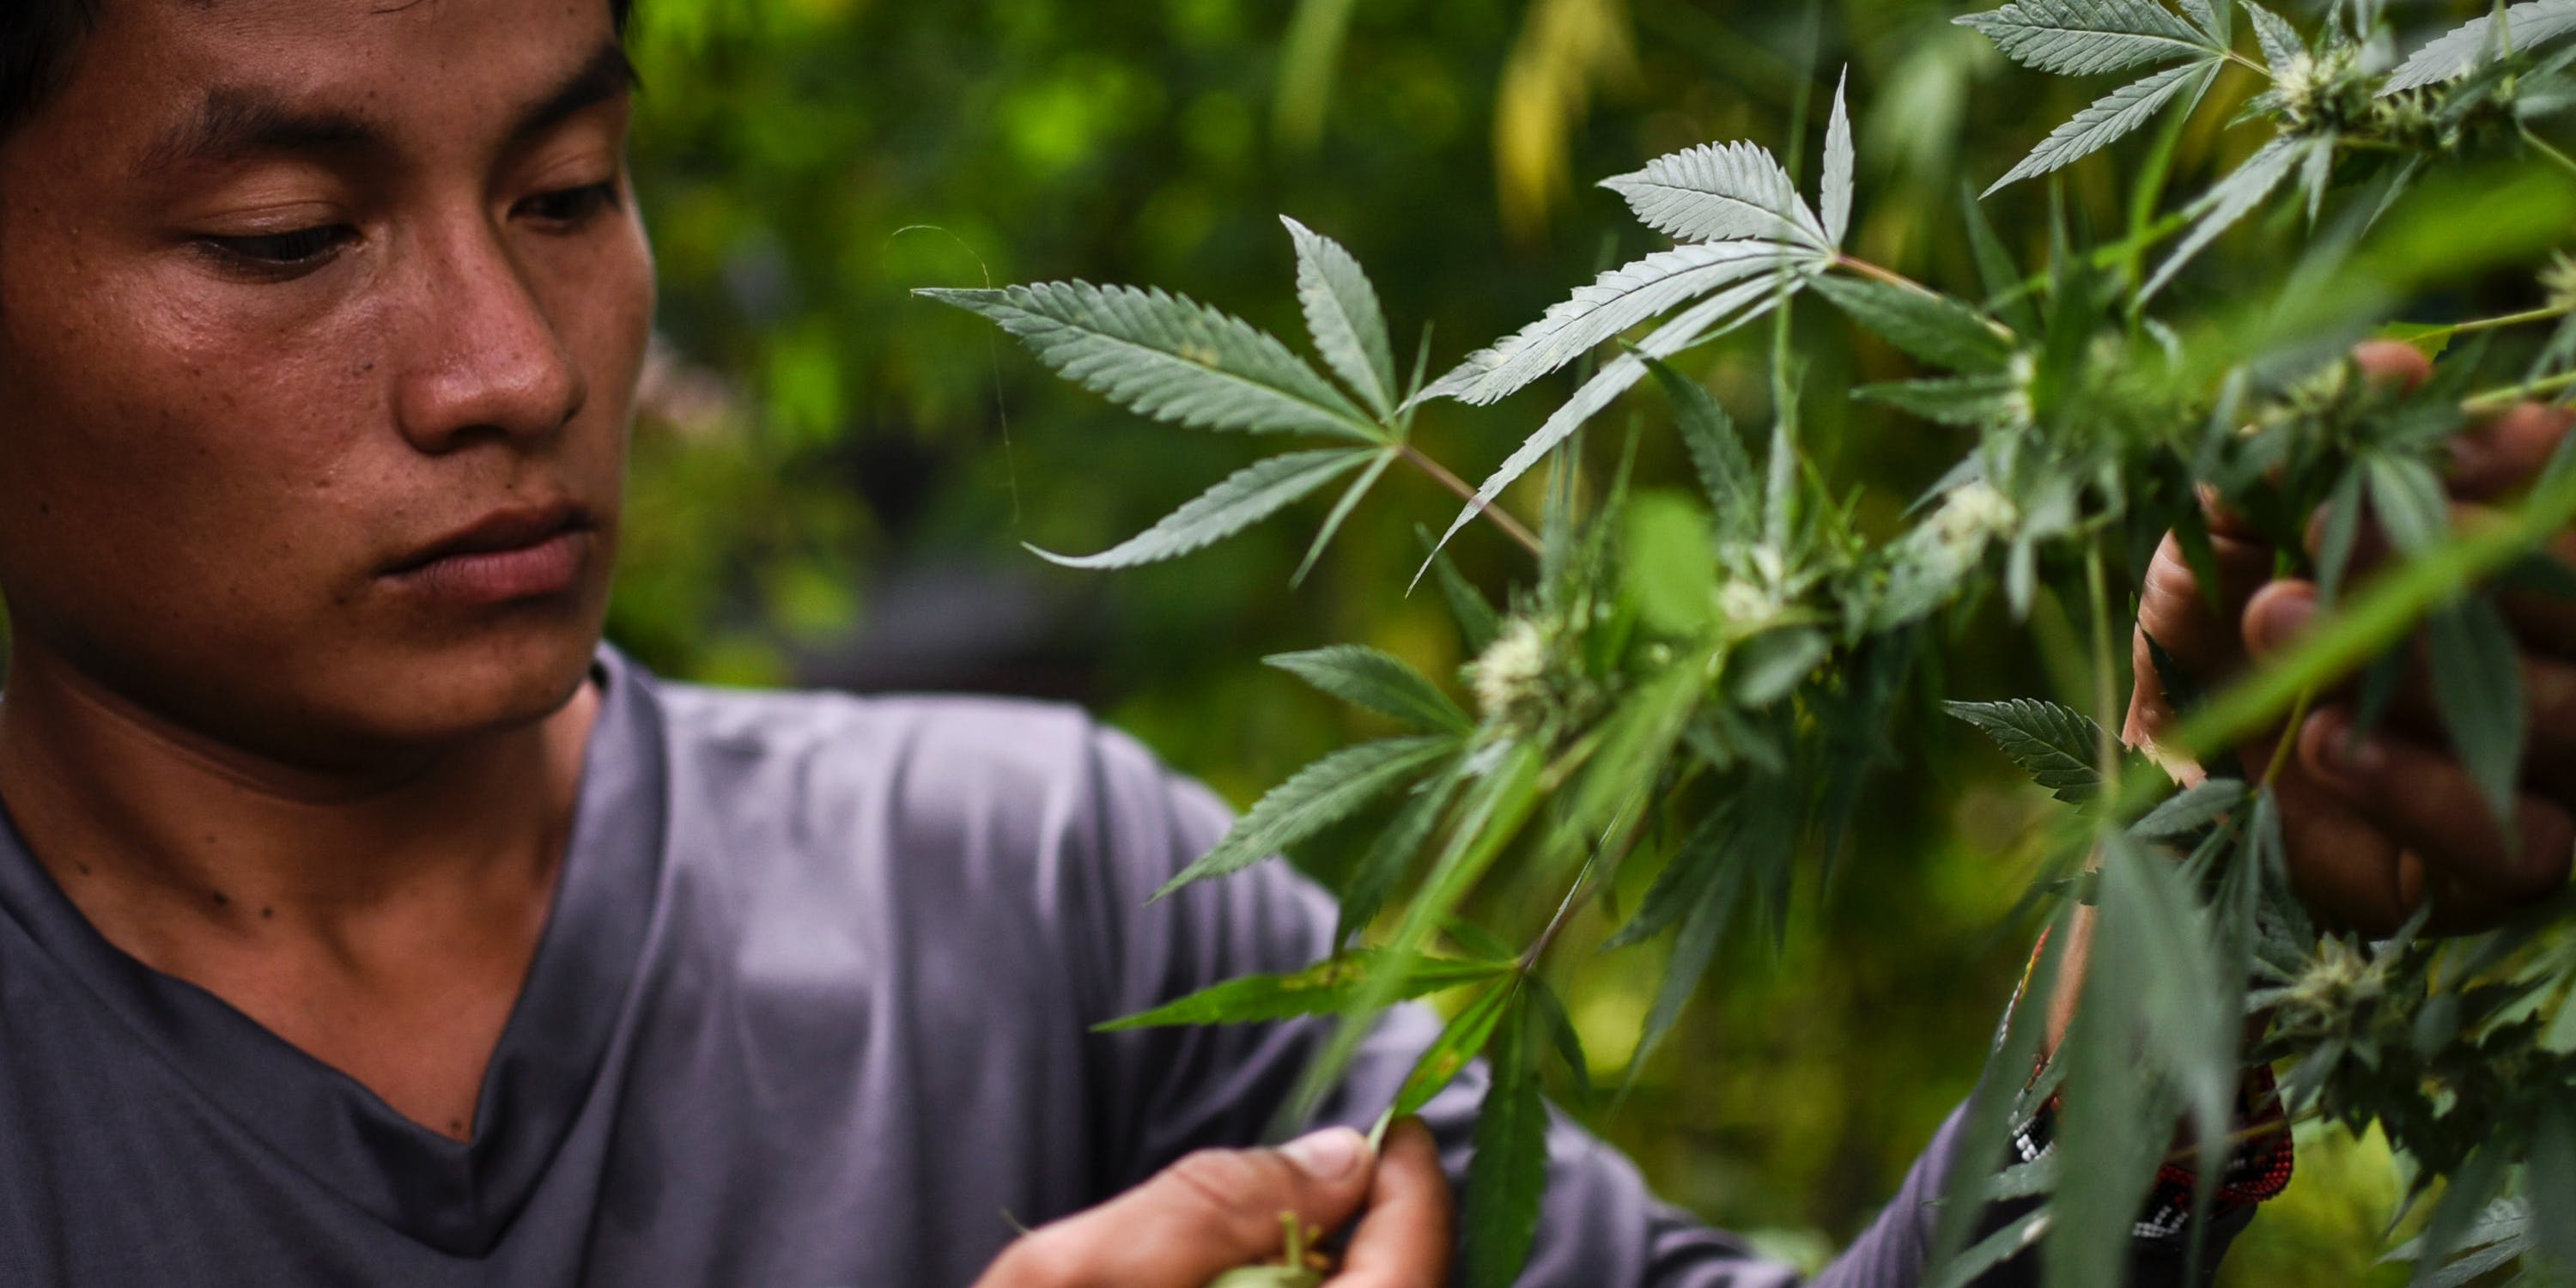 Colombia may soon become a world supplier of medical marijuana